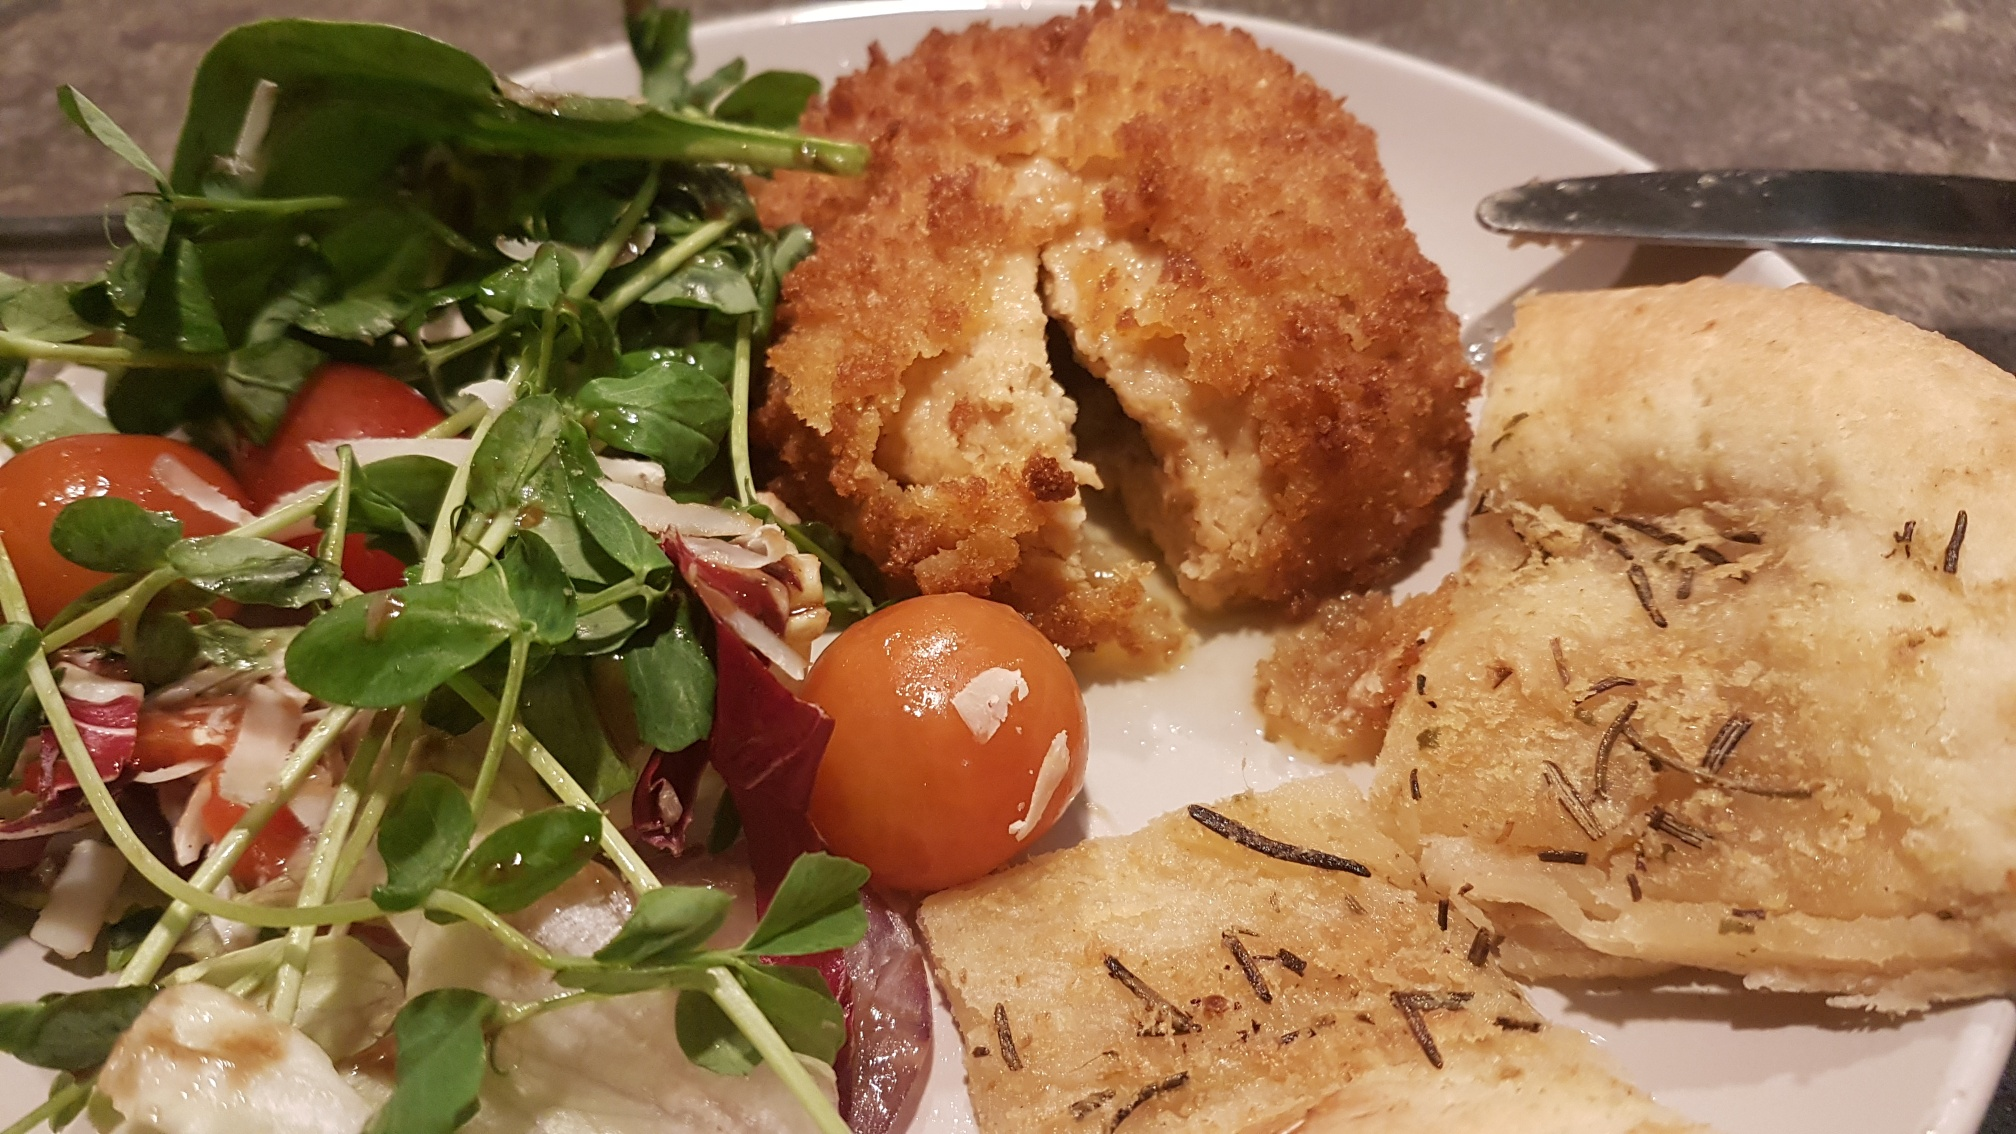 What is it like inside a No Chicken M&S Kiev?